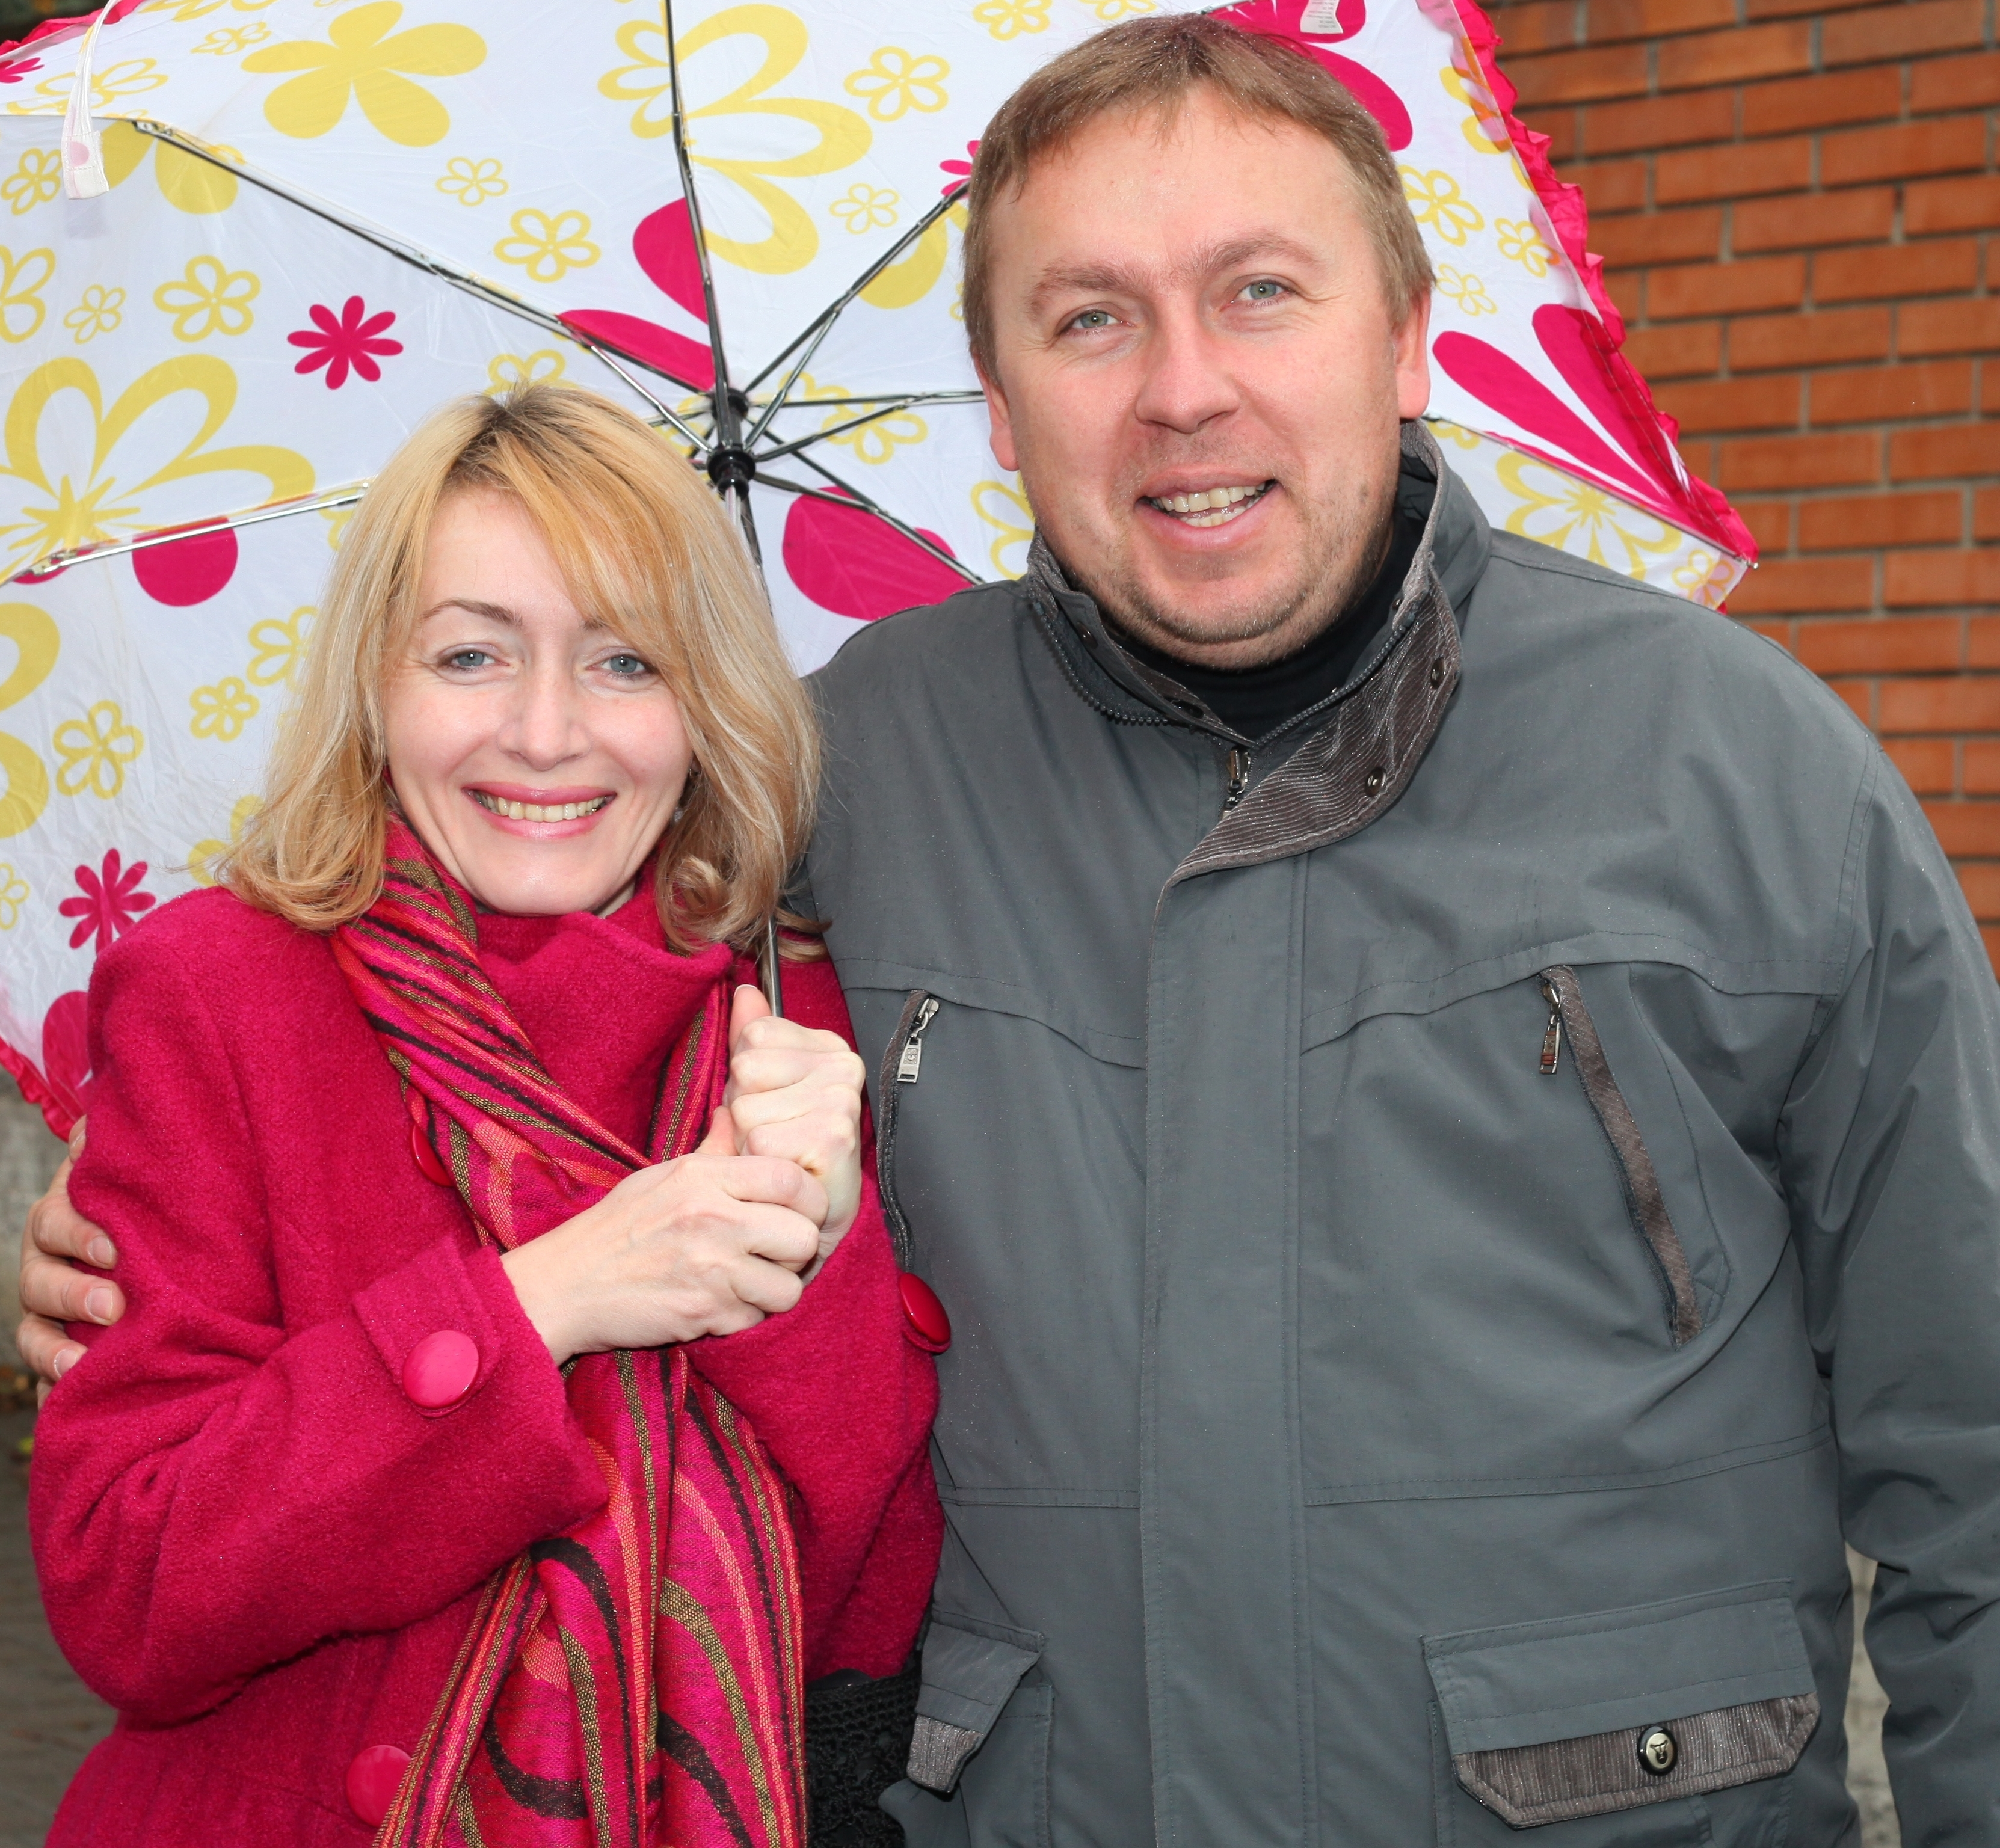 a charming beautiful Catholic woman with an umbrella and a handsome Catholic man